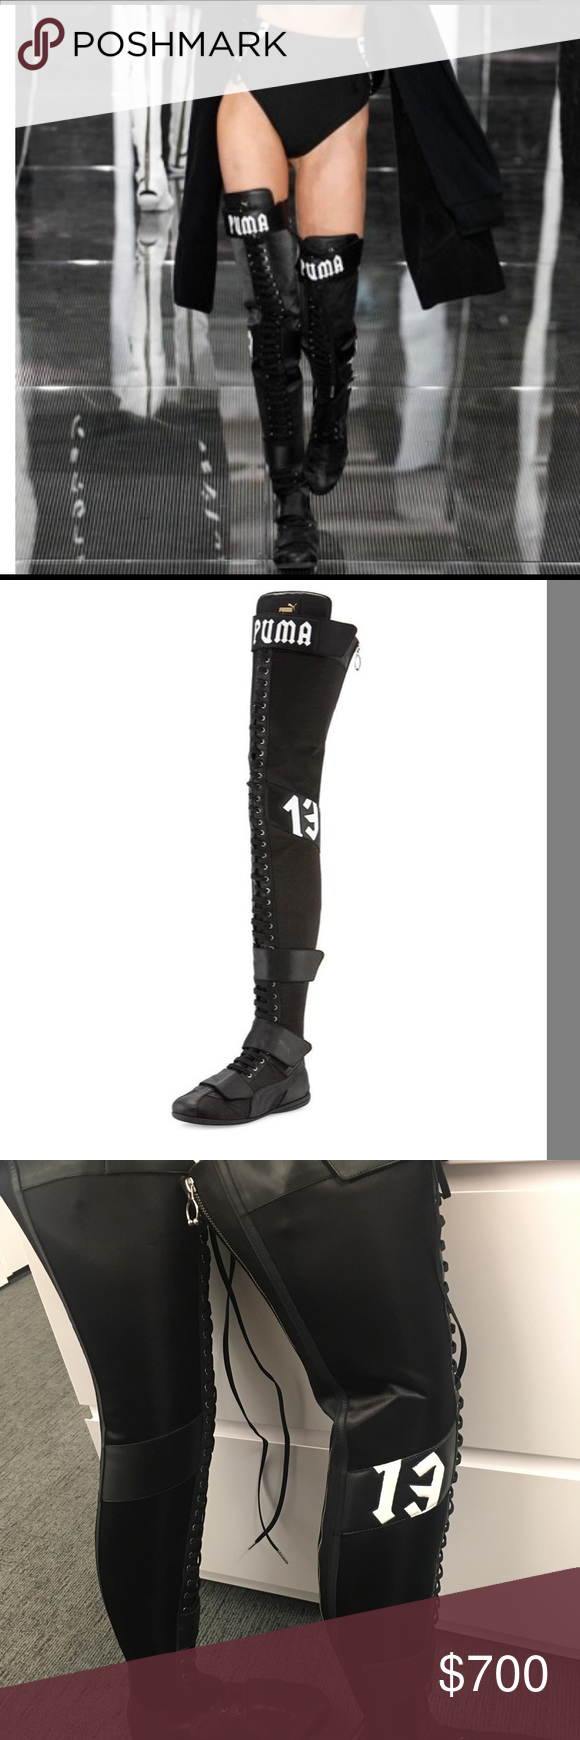 a68f52fa788 FENTY X PUMA Eskiva Over The Knee boots by Rihanna NEVER WORN FENTY PUMA by  Rihanna satin leather boxing boot with leather trim. 0.5